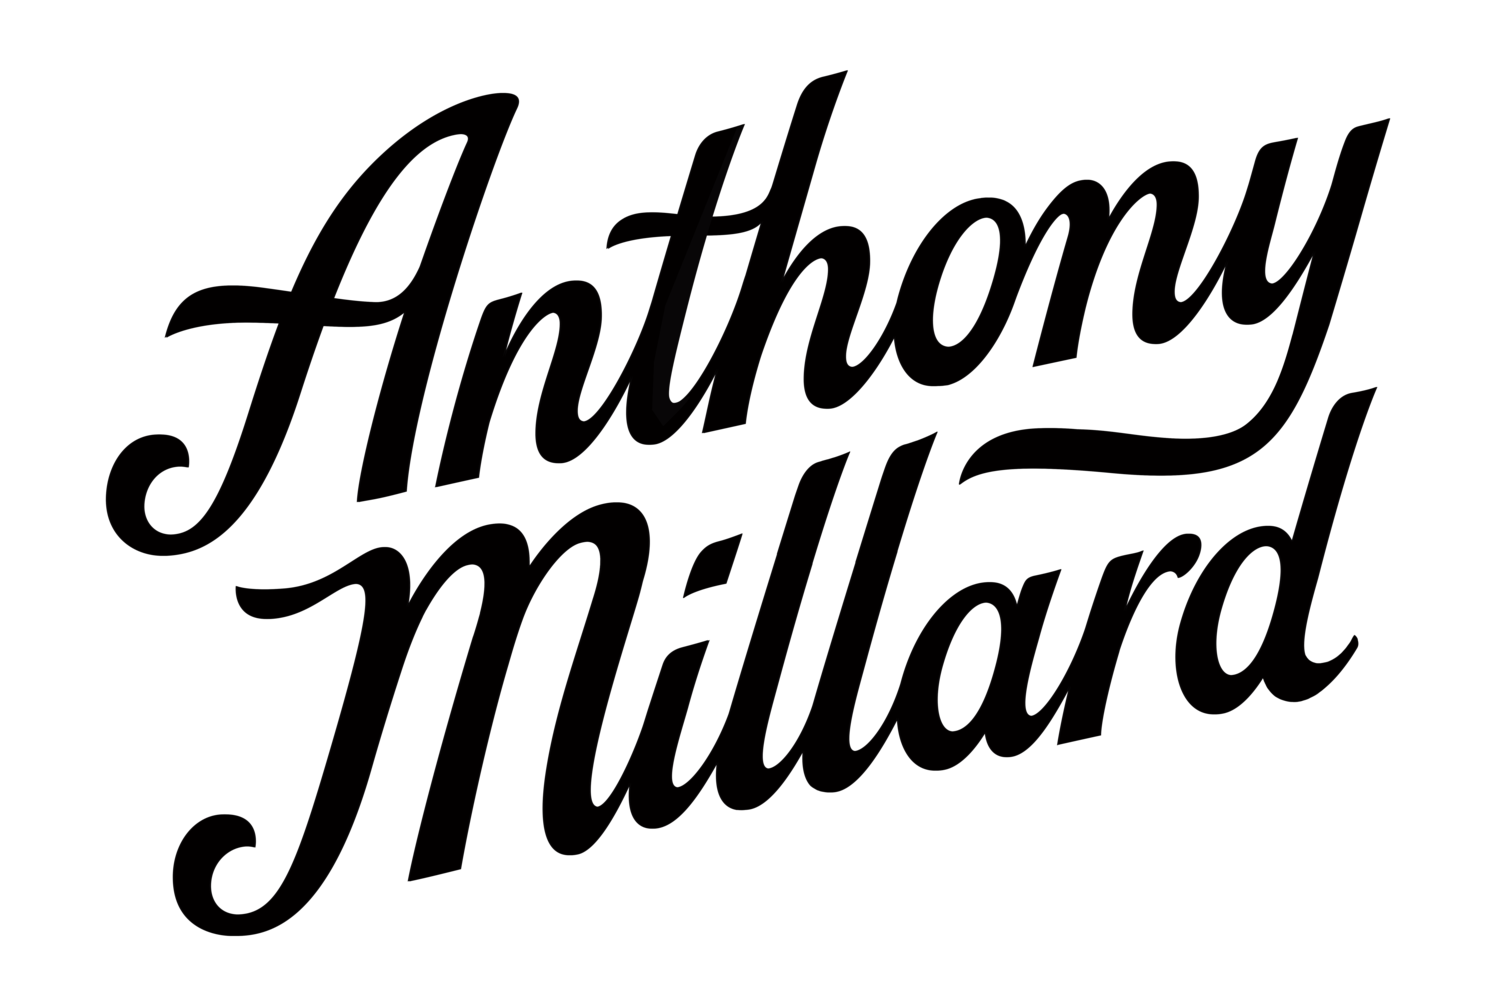 anthony millard